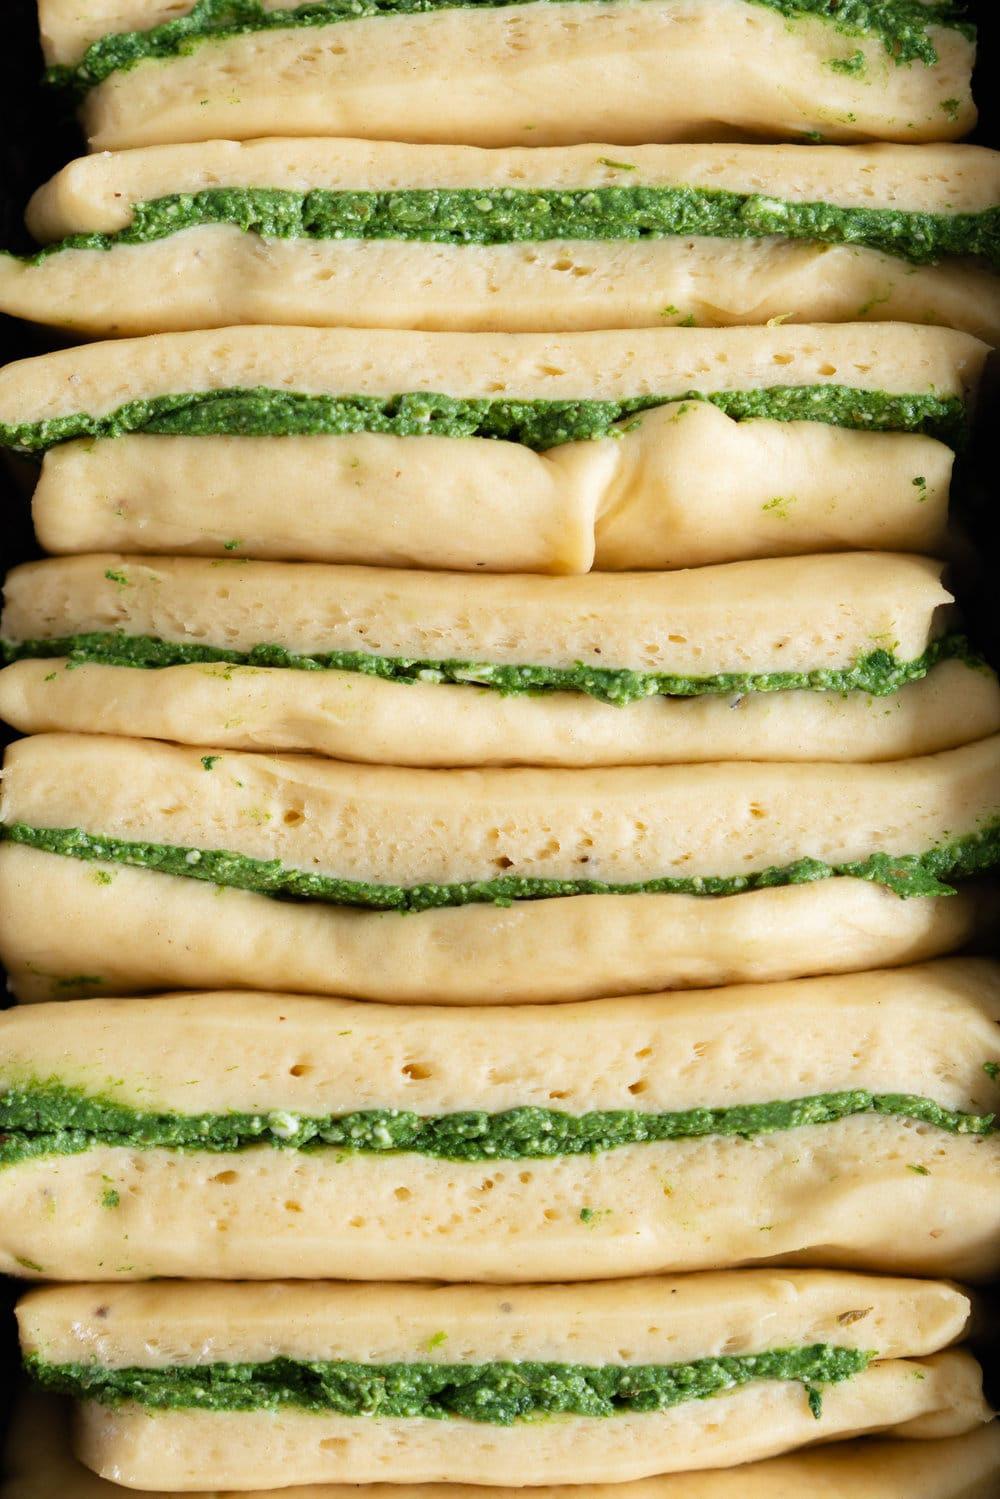 Spinach, Feta and Basil pesto Pull-apart bread. This pull apart loaf is super easy to put together, while being very impressive at the same time! A simple dough is filled with a spinach, feta and basil pesto filling, then cut into rectangles and layered into a loaf tin for the perfect pull apart bread. #pullapartbread #basilpestobread #spinachloaf